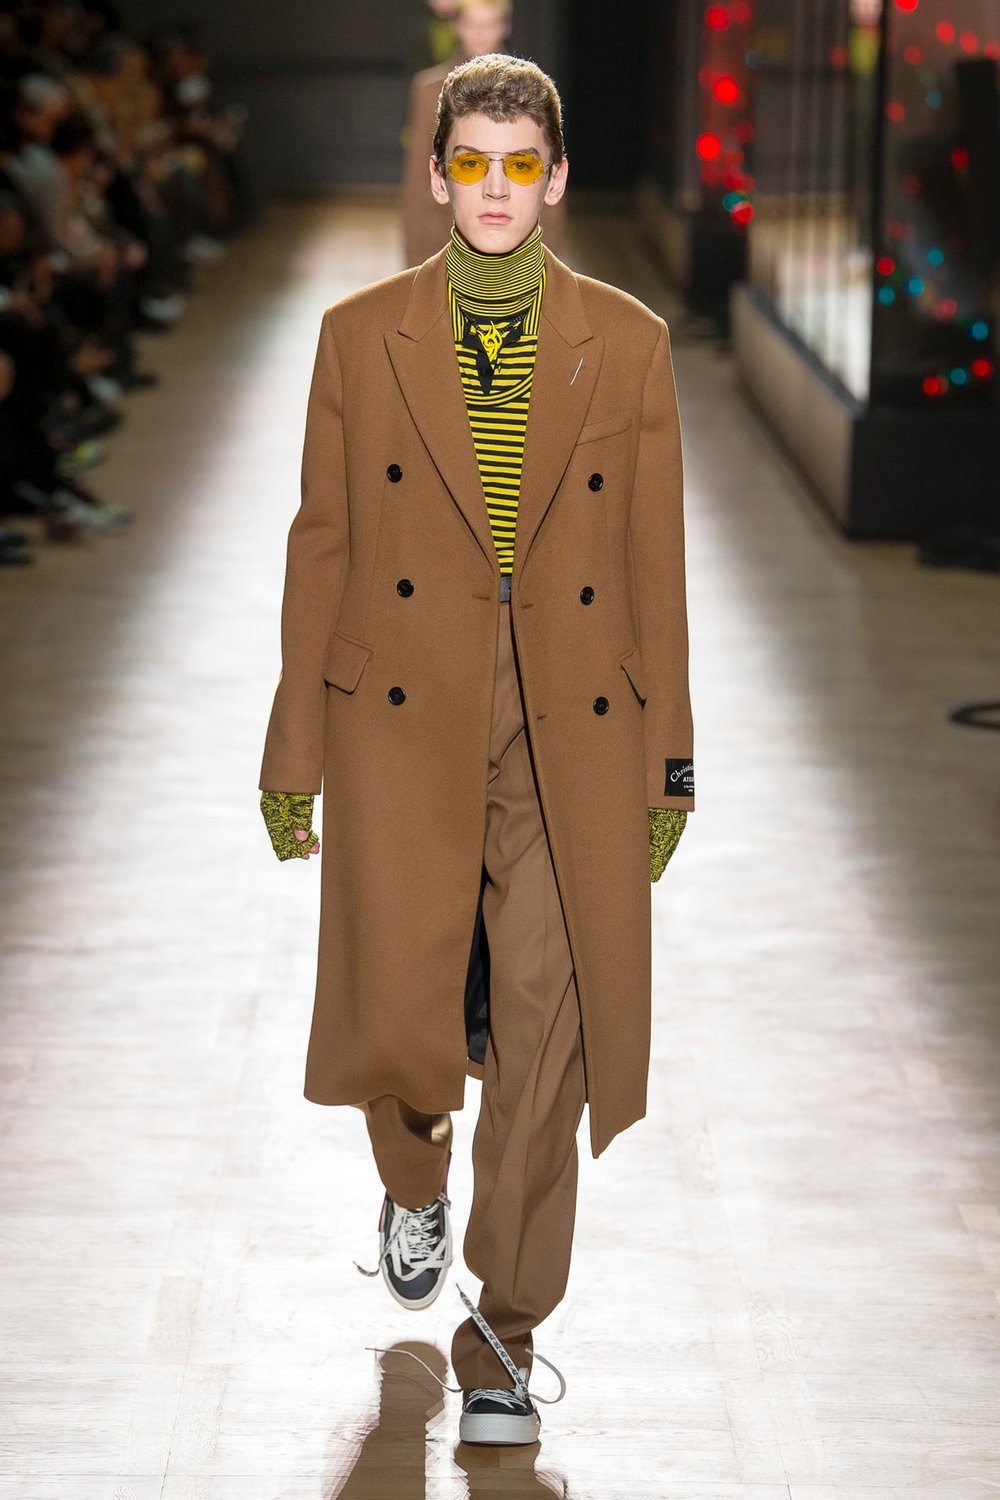 dior_homme_look_36_menswear_autumn_2018.jpeg